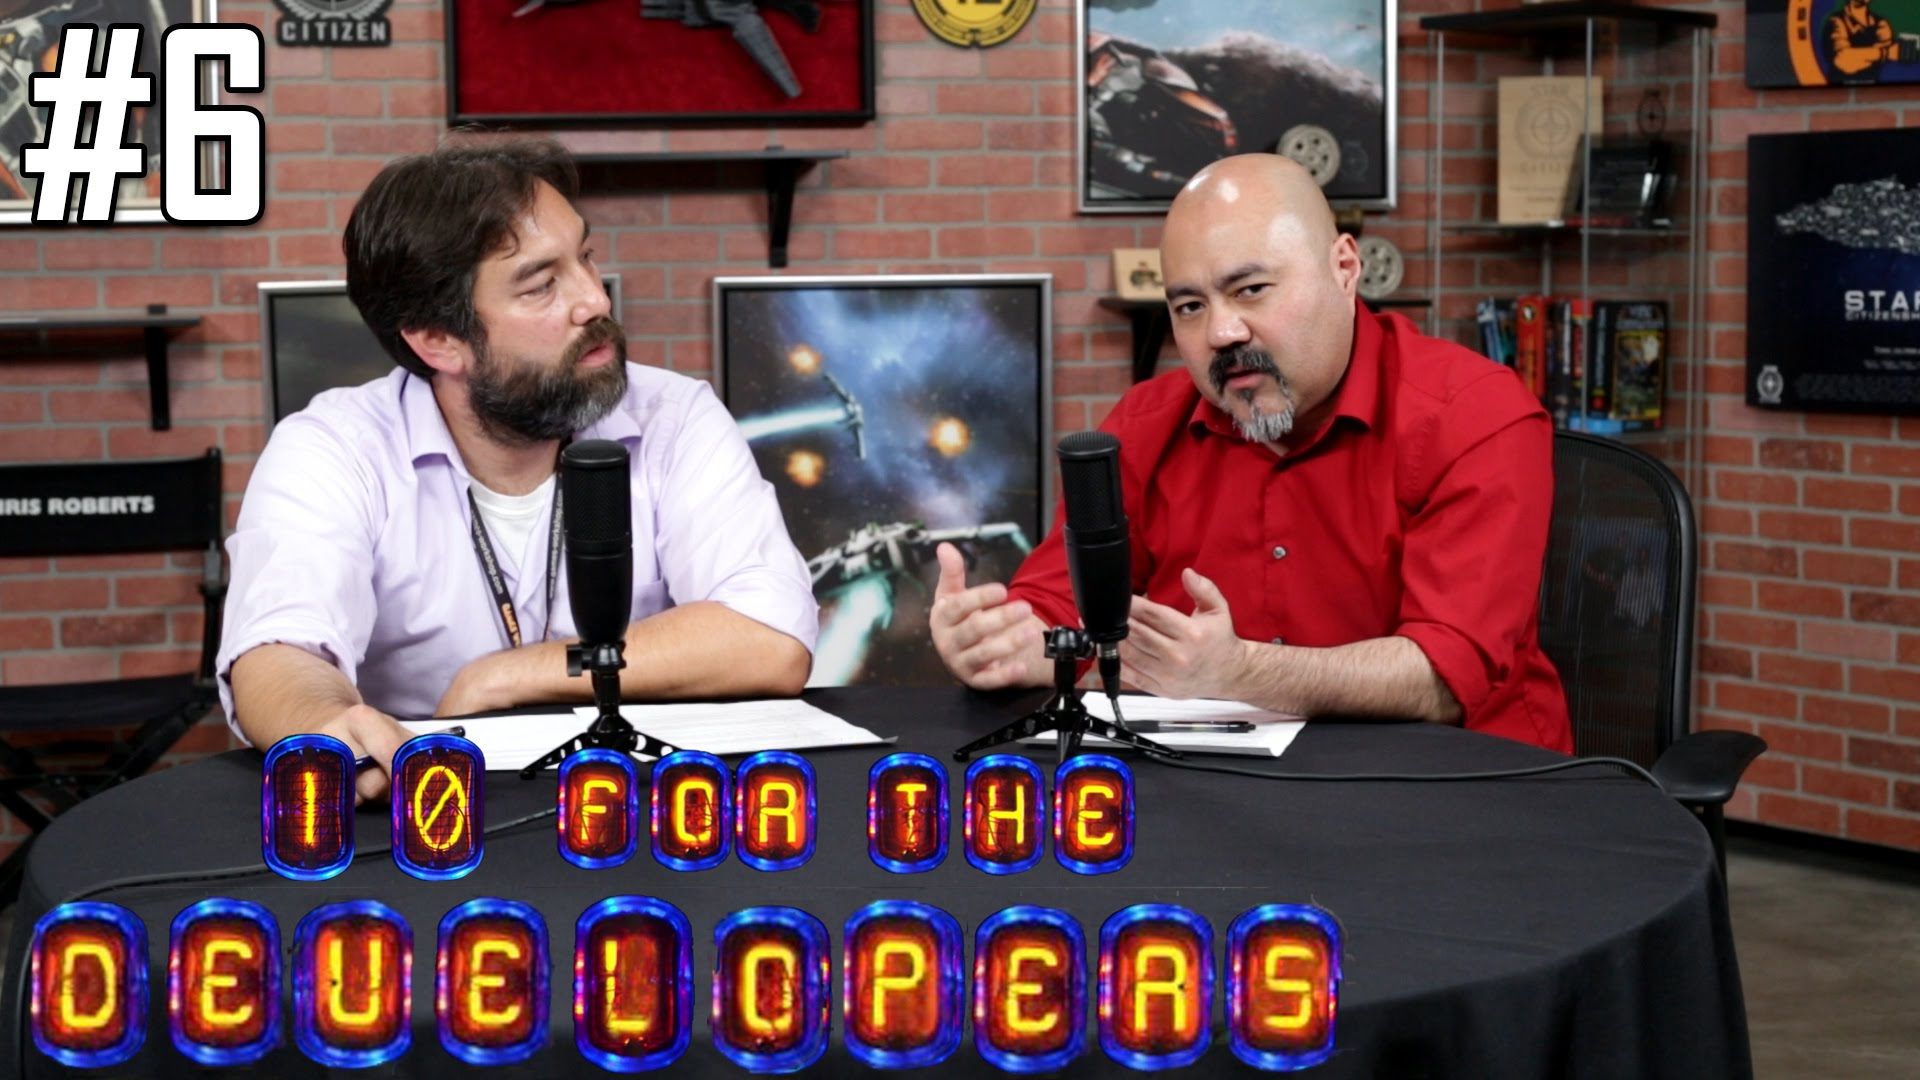 10 for the Developers: Episode 06